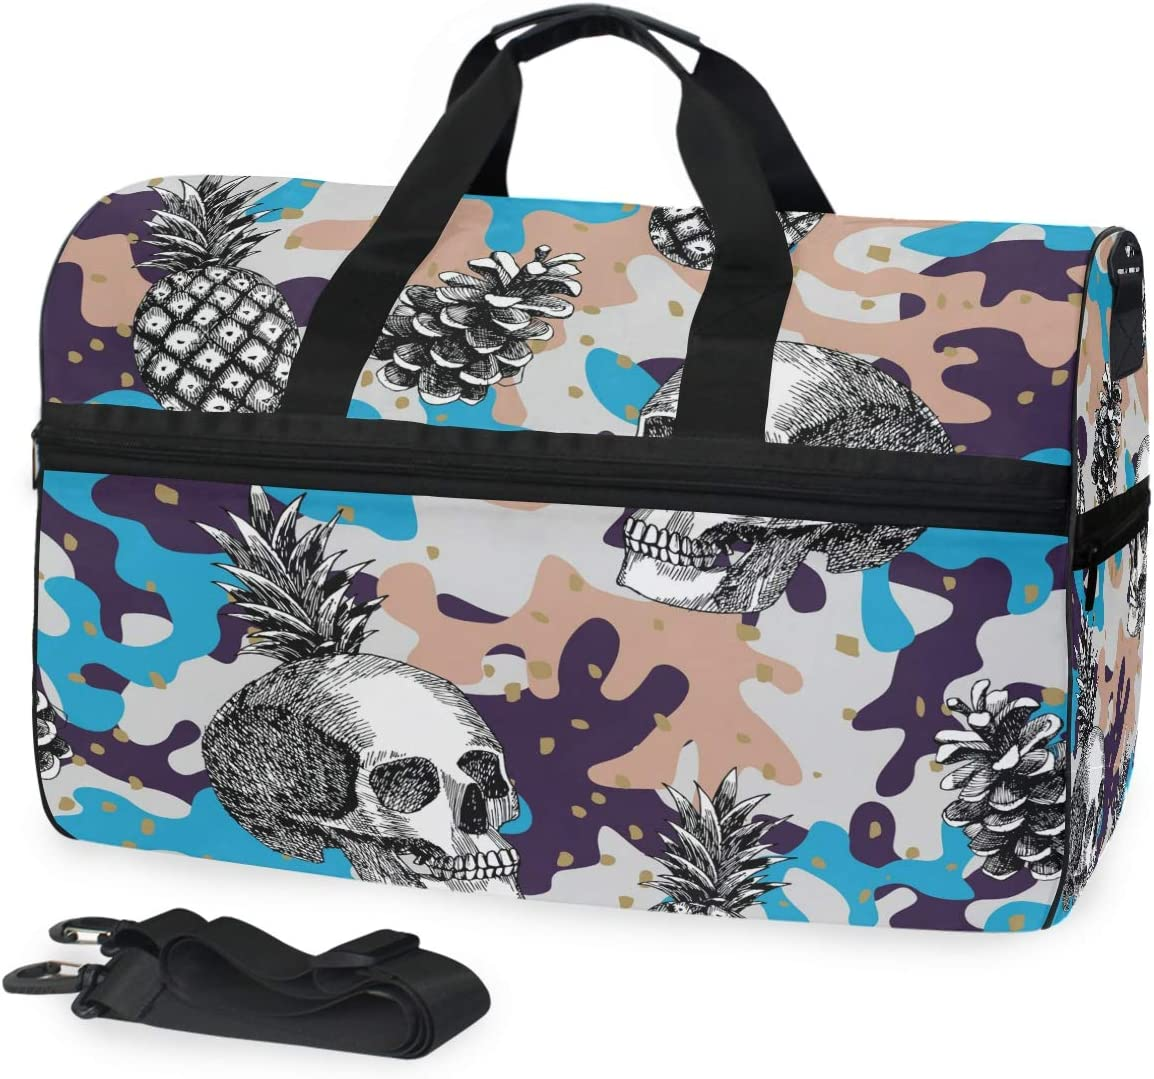 Skull Pineapple Camo Military Camouflage Sports Gym Bag with Shoes Compartment Travel Duffel Bag for Men and Women